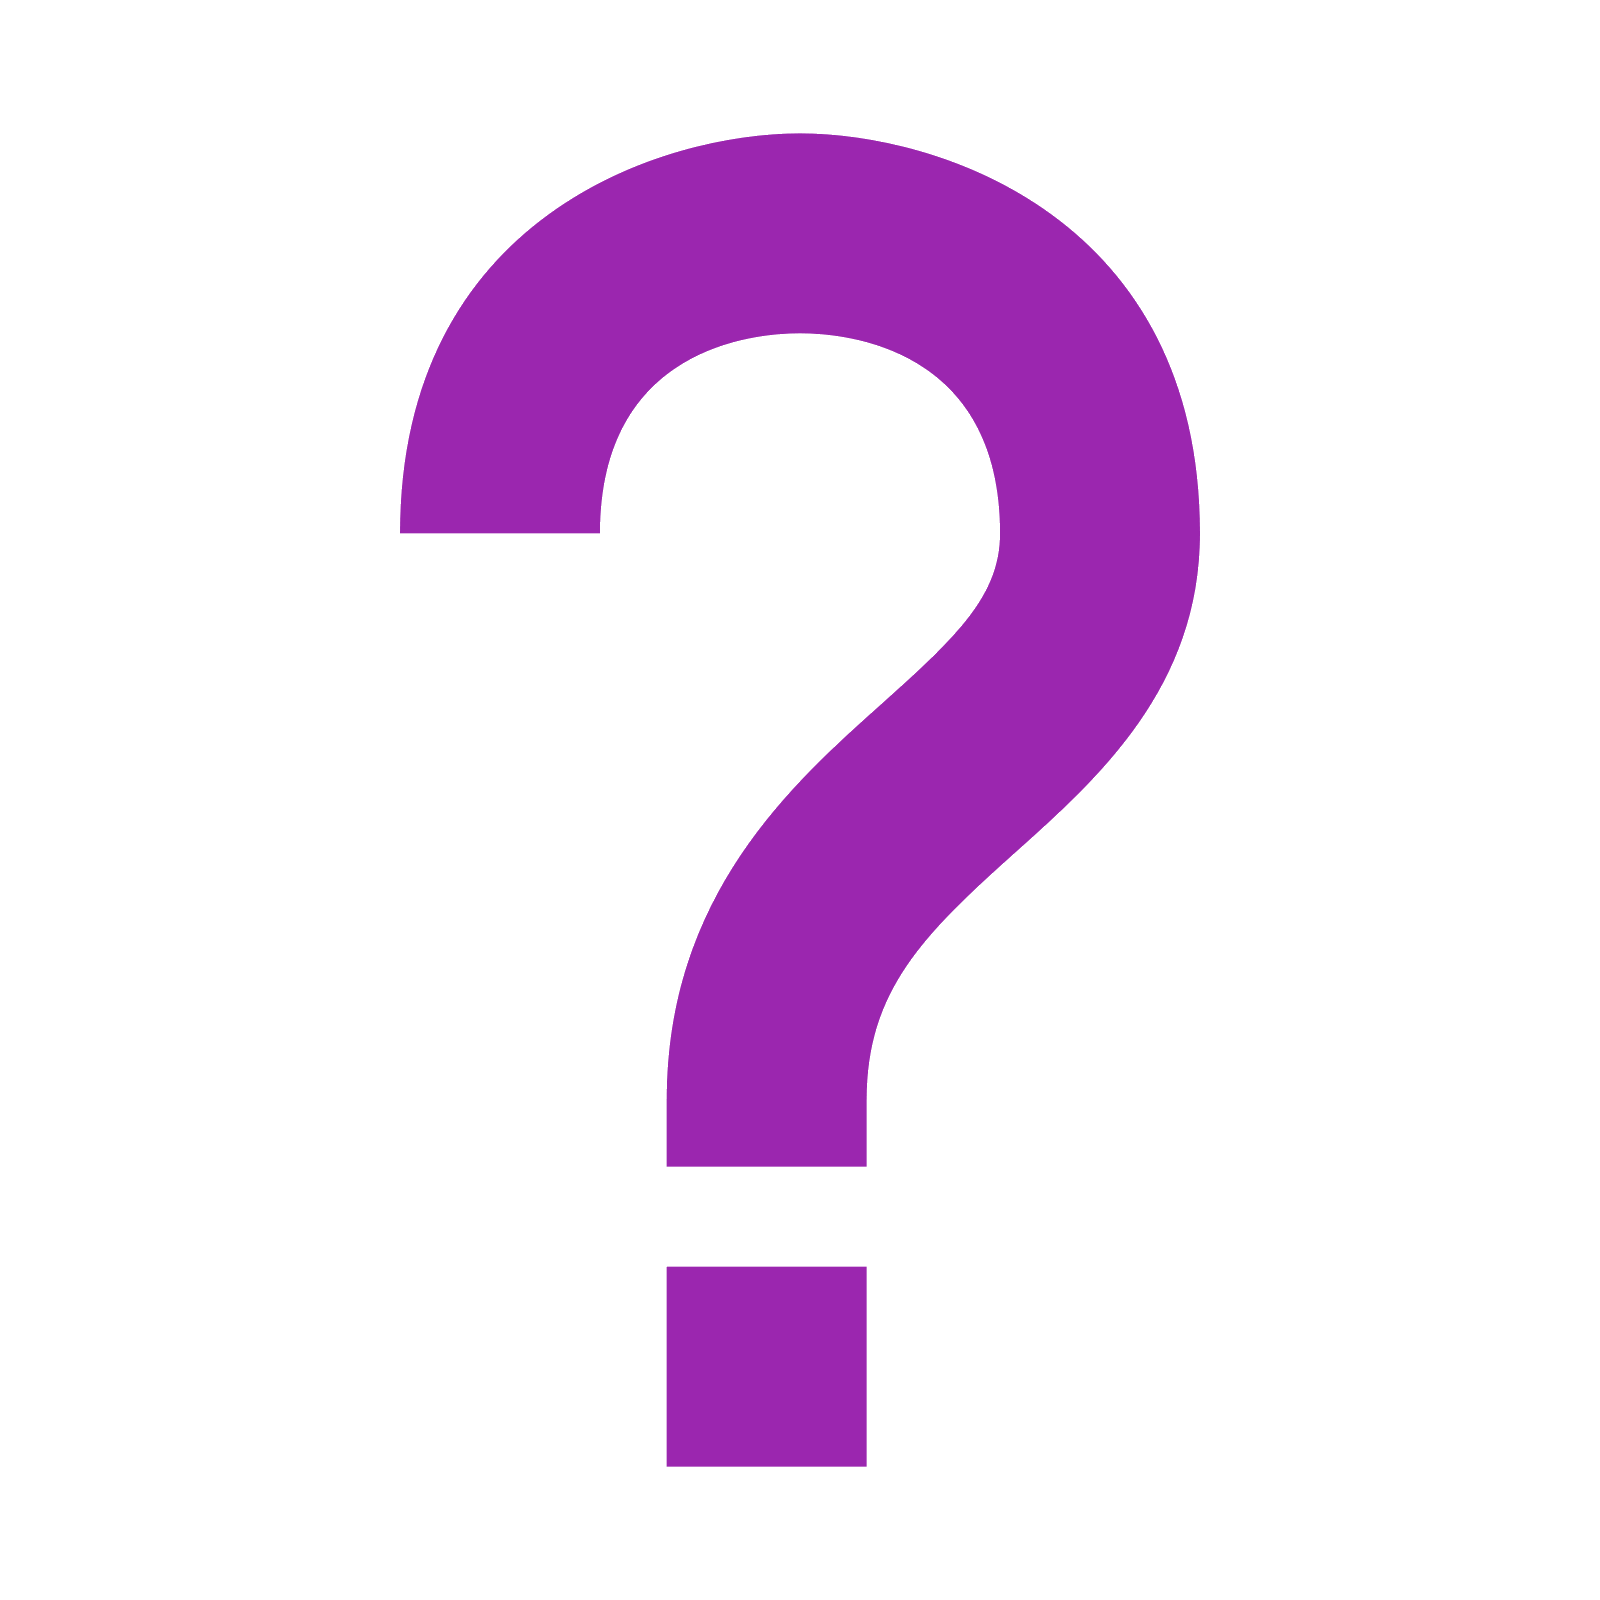 Pink question mark png. Quotation full stop computer